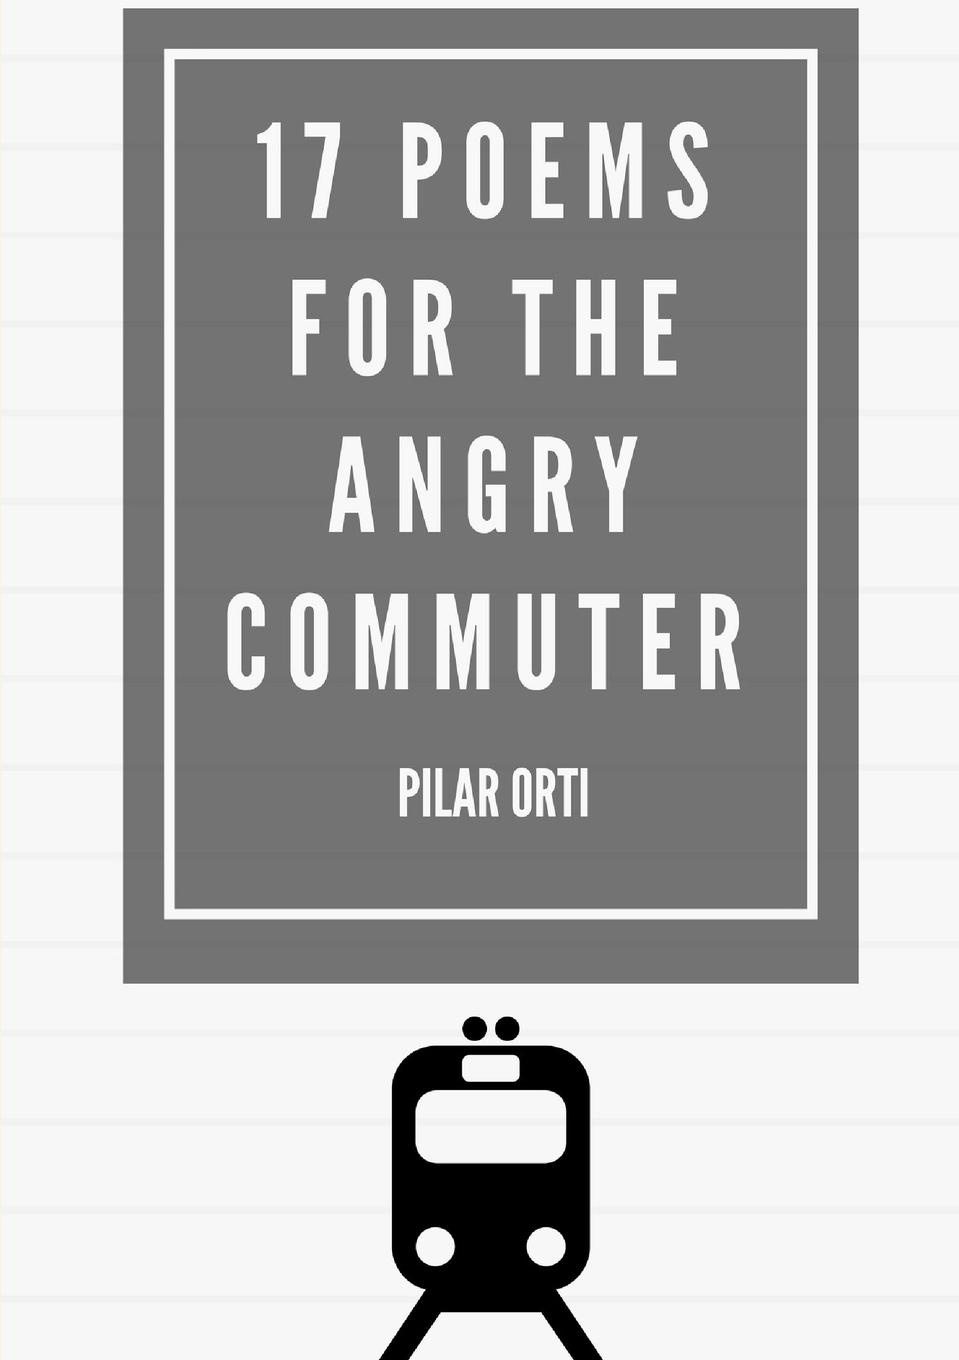 Pilar Orti 17 Poems for the Angry Commuter